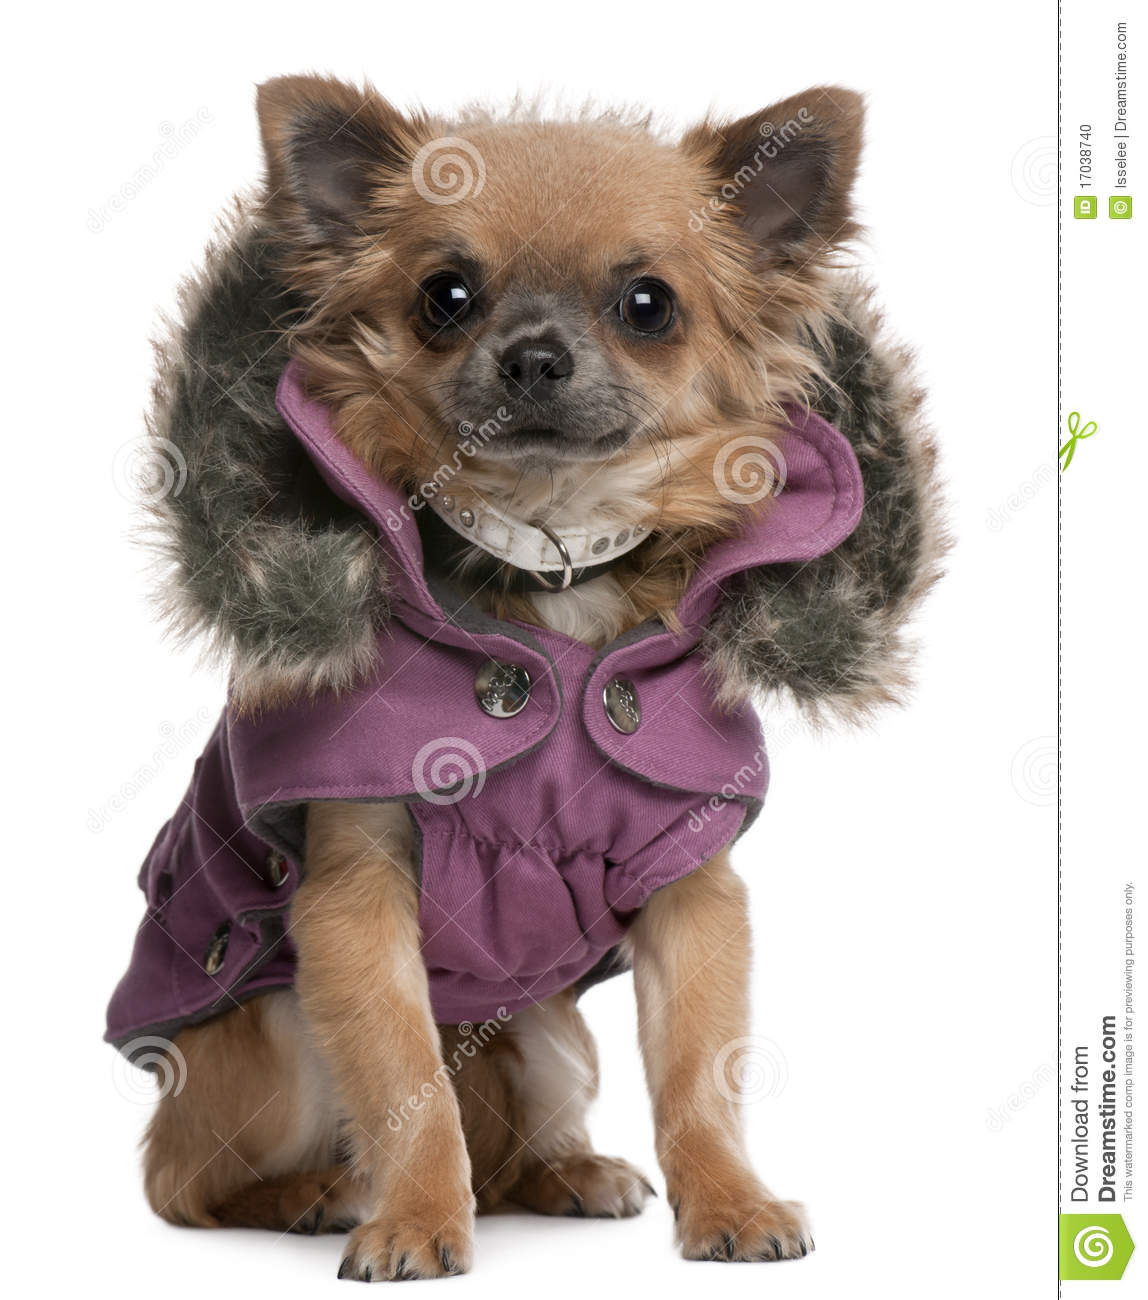 Puppy Coat photo - 1